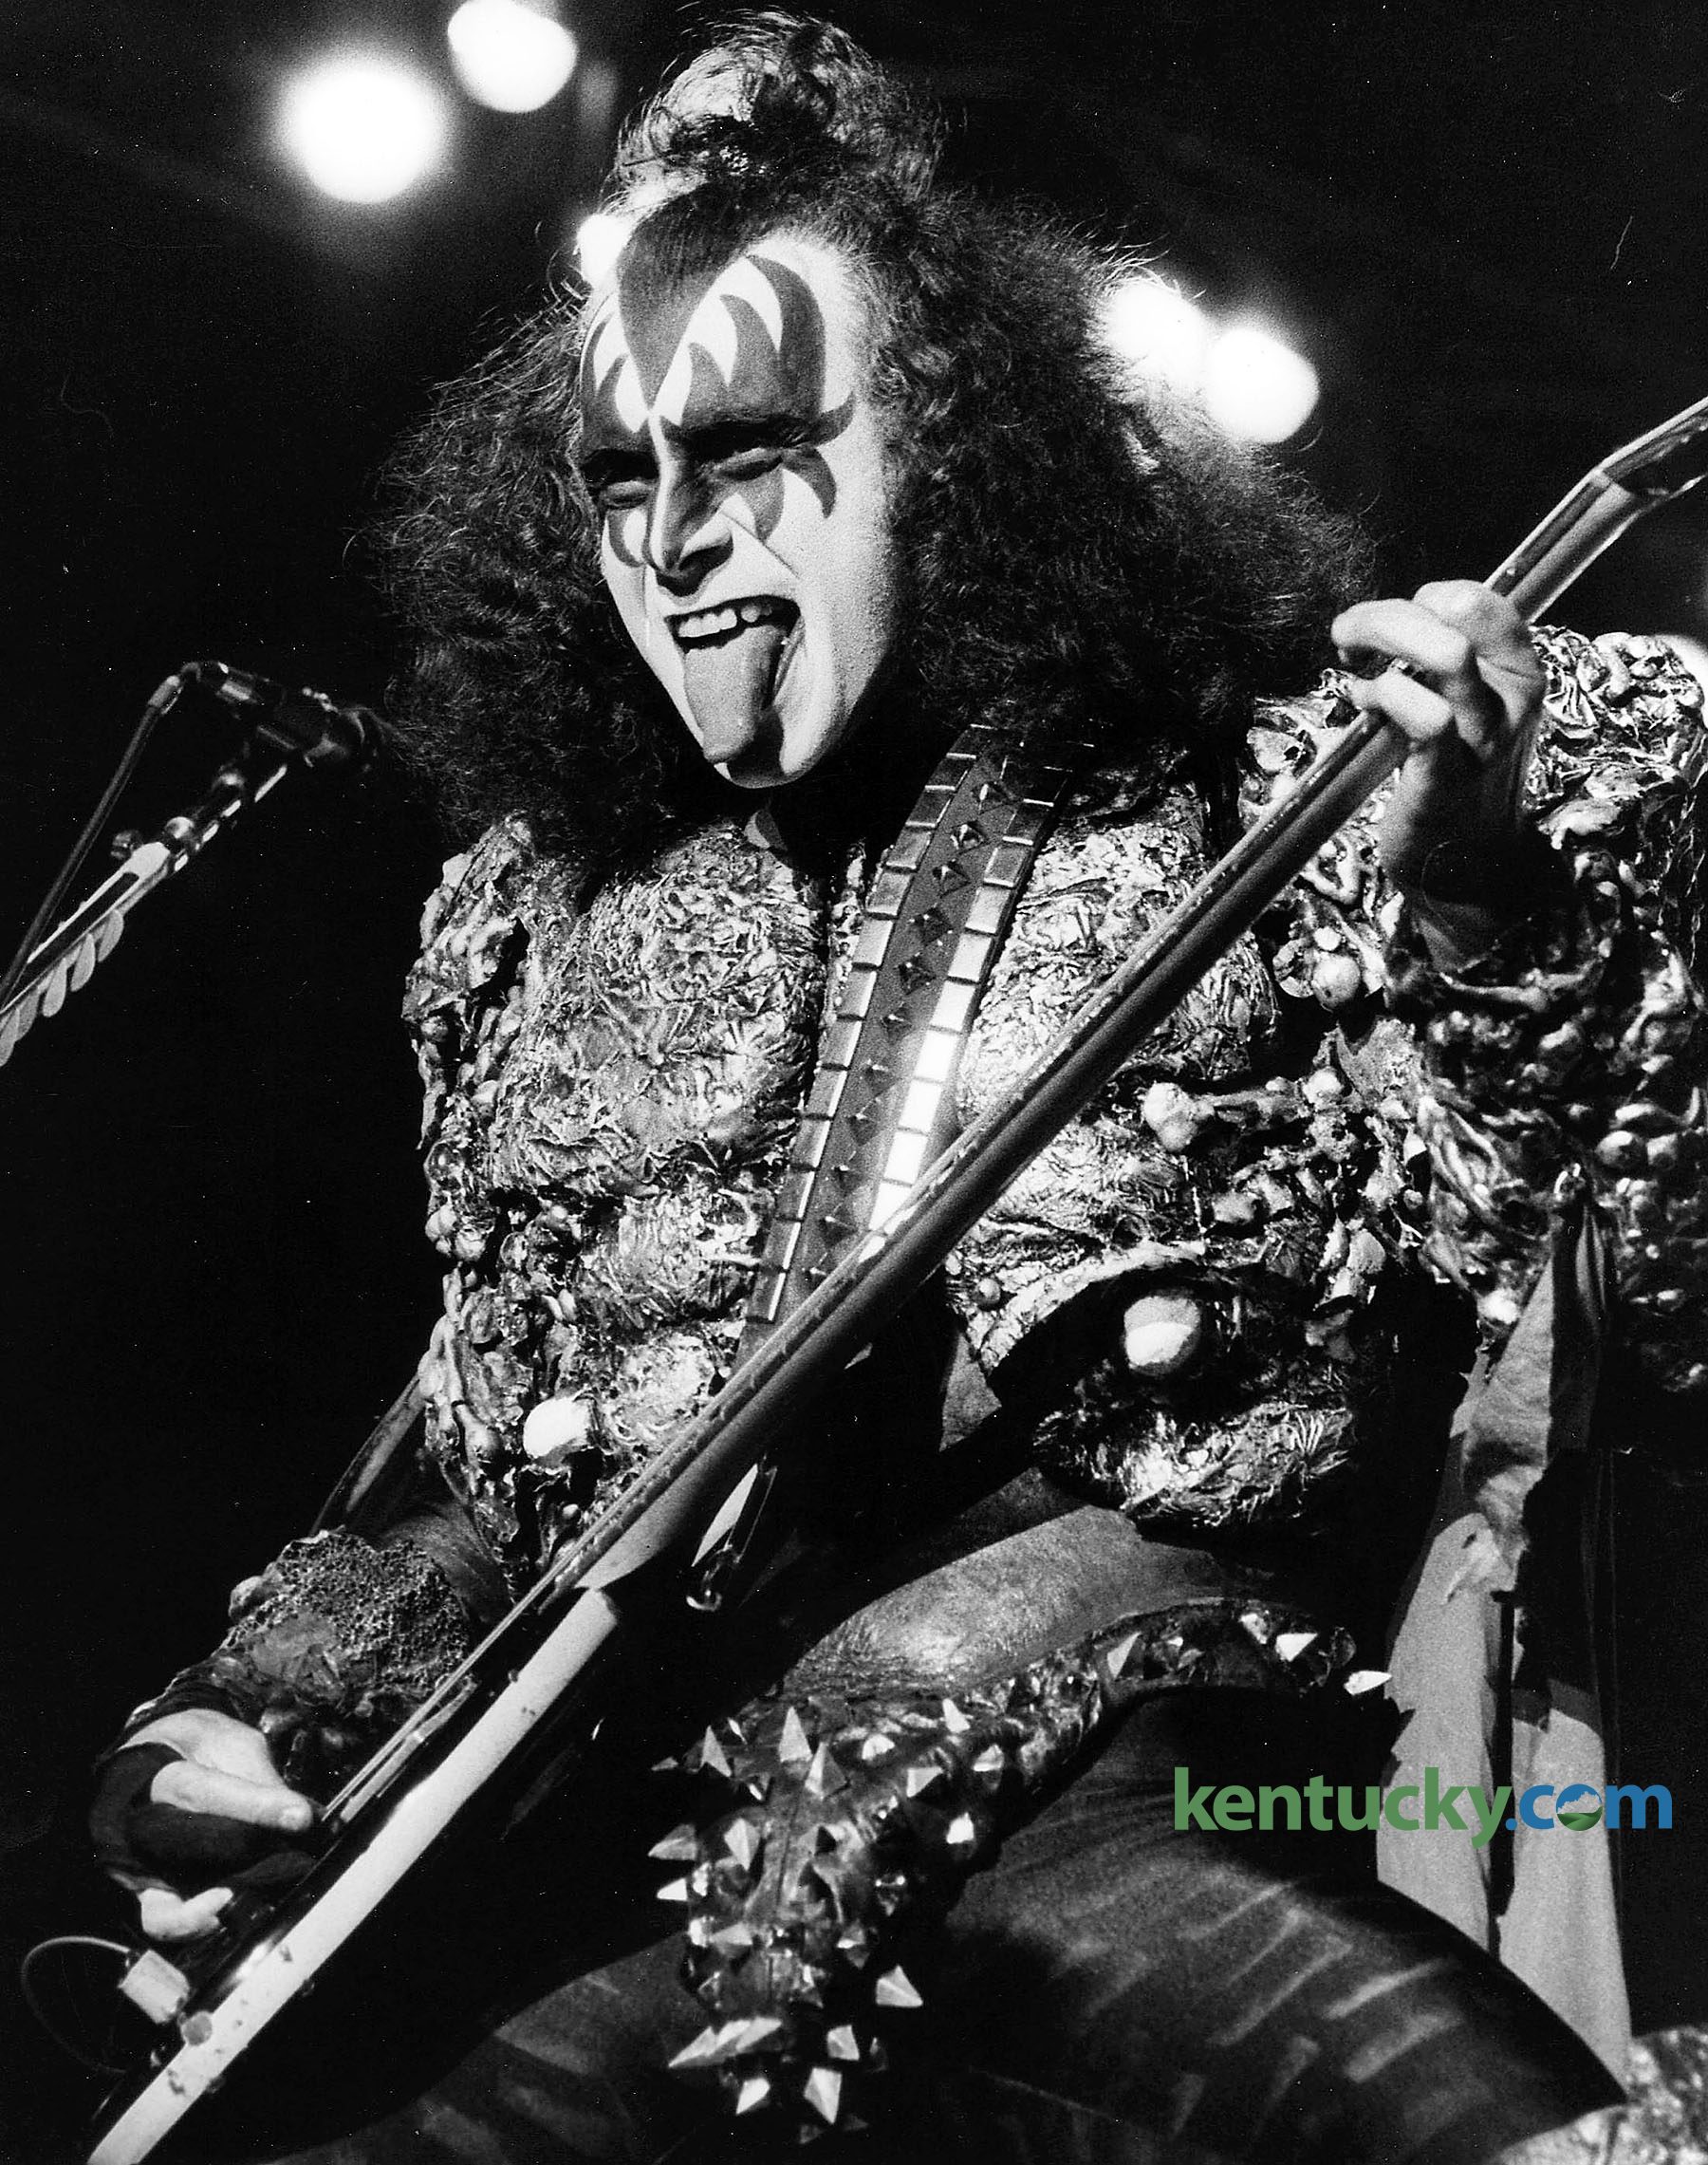 kentucky photo archive photos from the lexington herald leader gene simmons bass guitarist co lead vocalist of kiss played in rupp